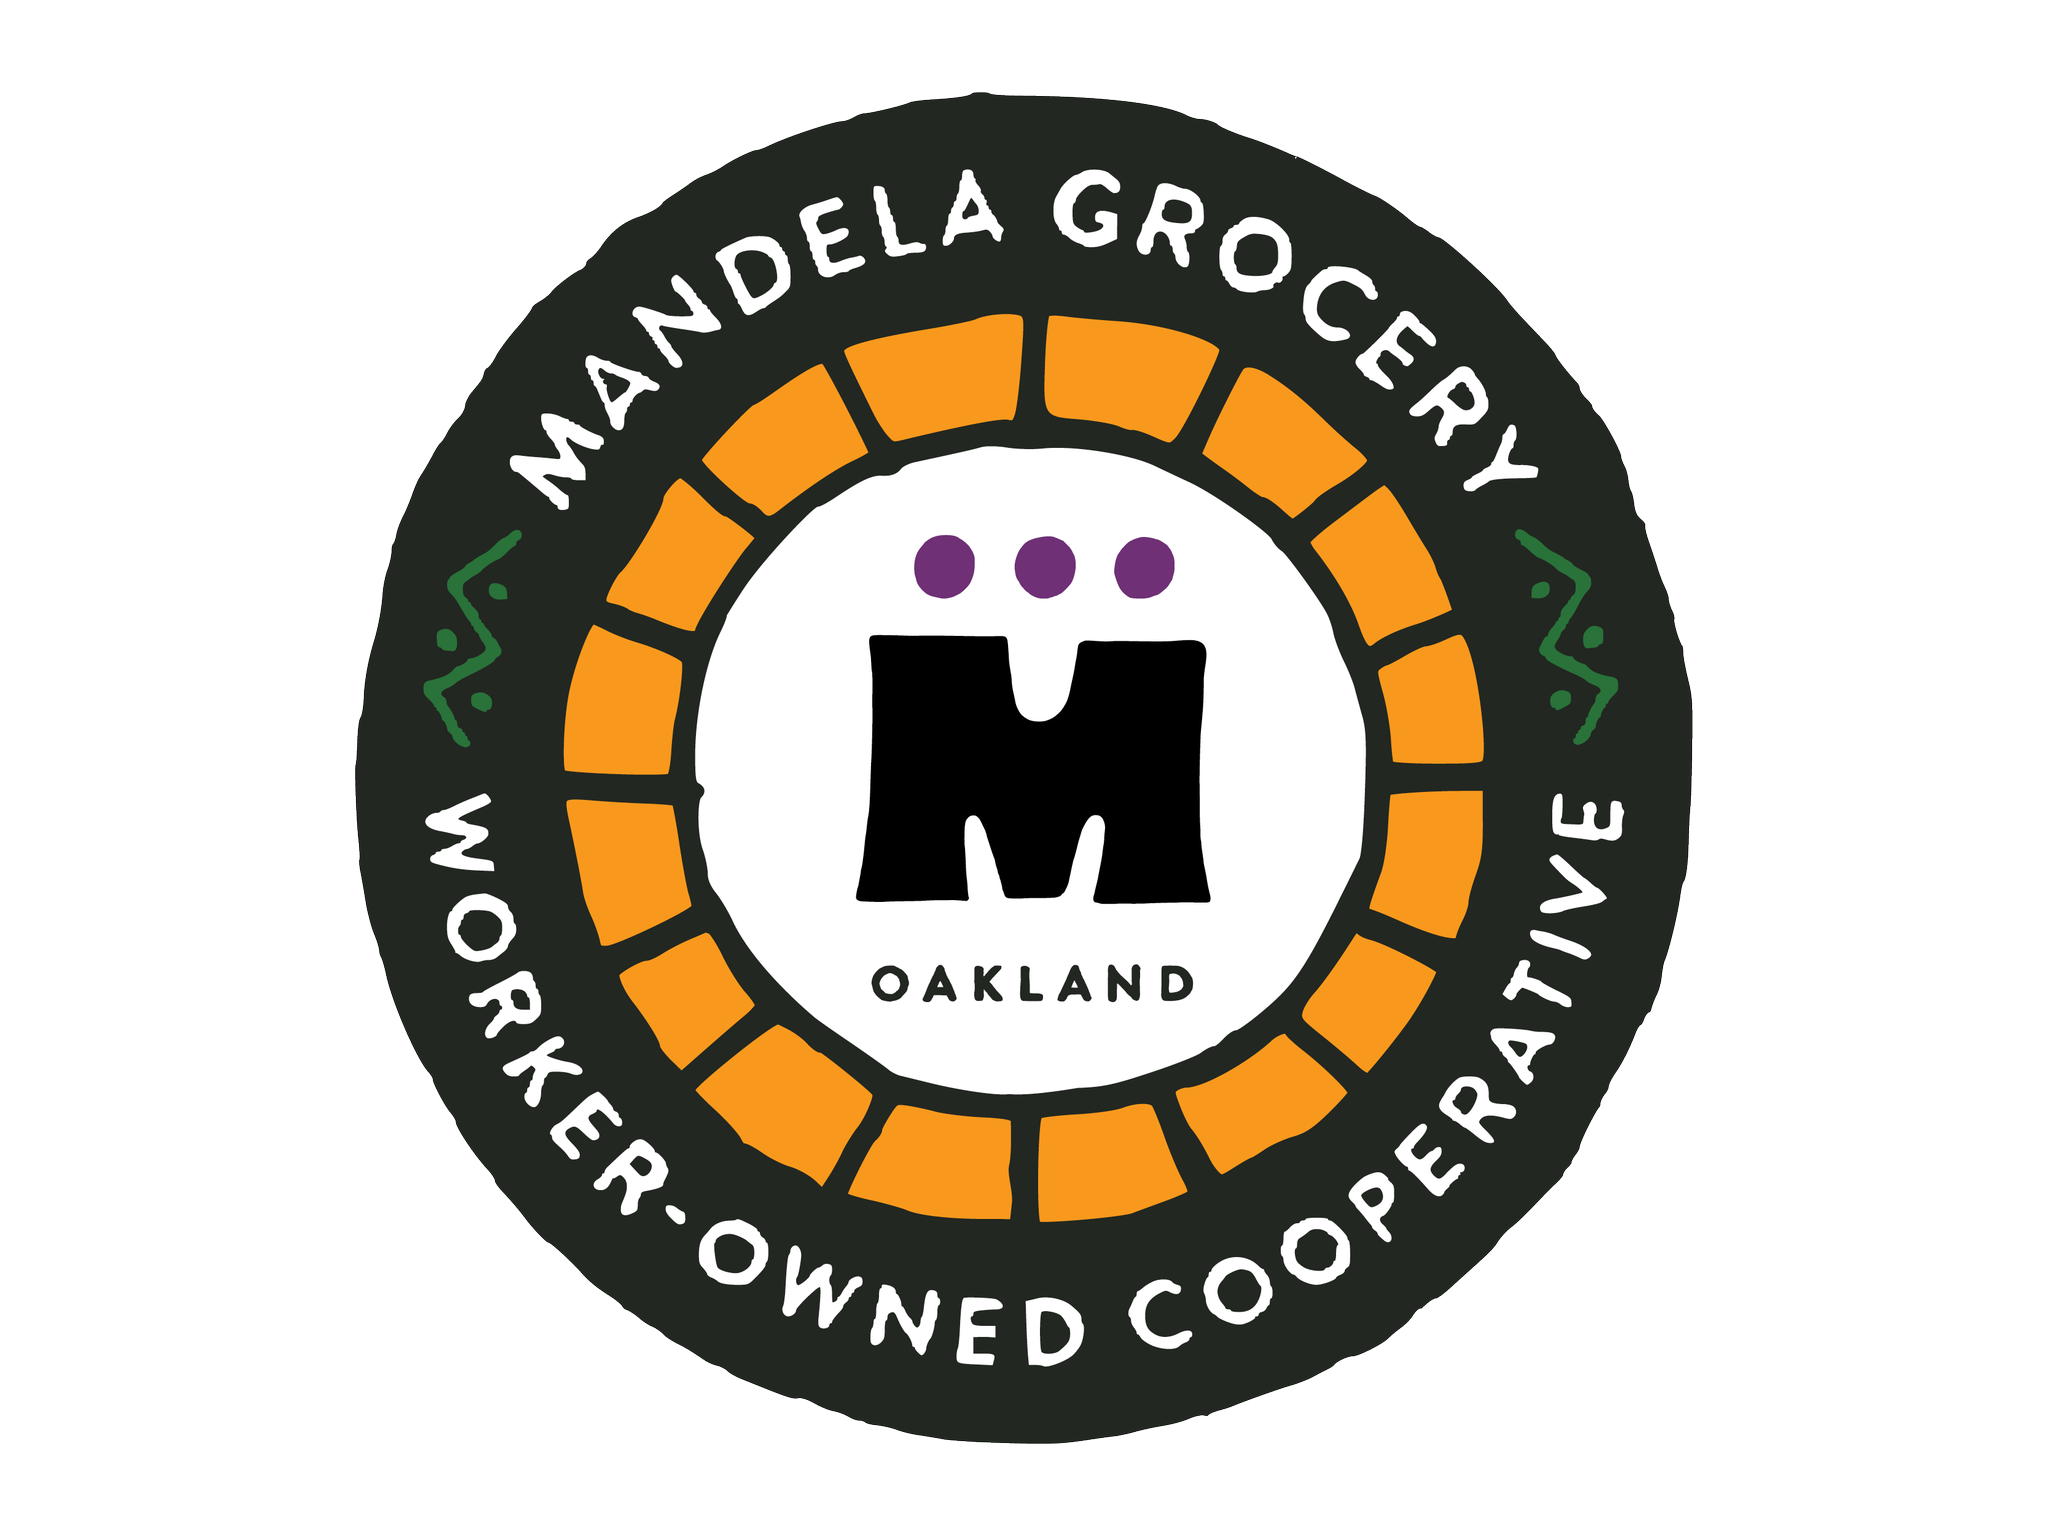 Tell everything your want in our NEW grocery store https://t.co/6hx6U6SkYC  and thank you for your time & energy #Oakland #Cooperatives https://t.co/DWFKbwc9Ys